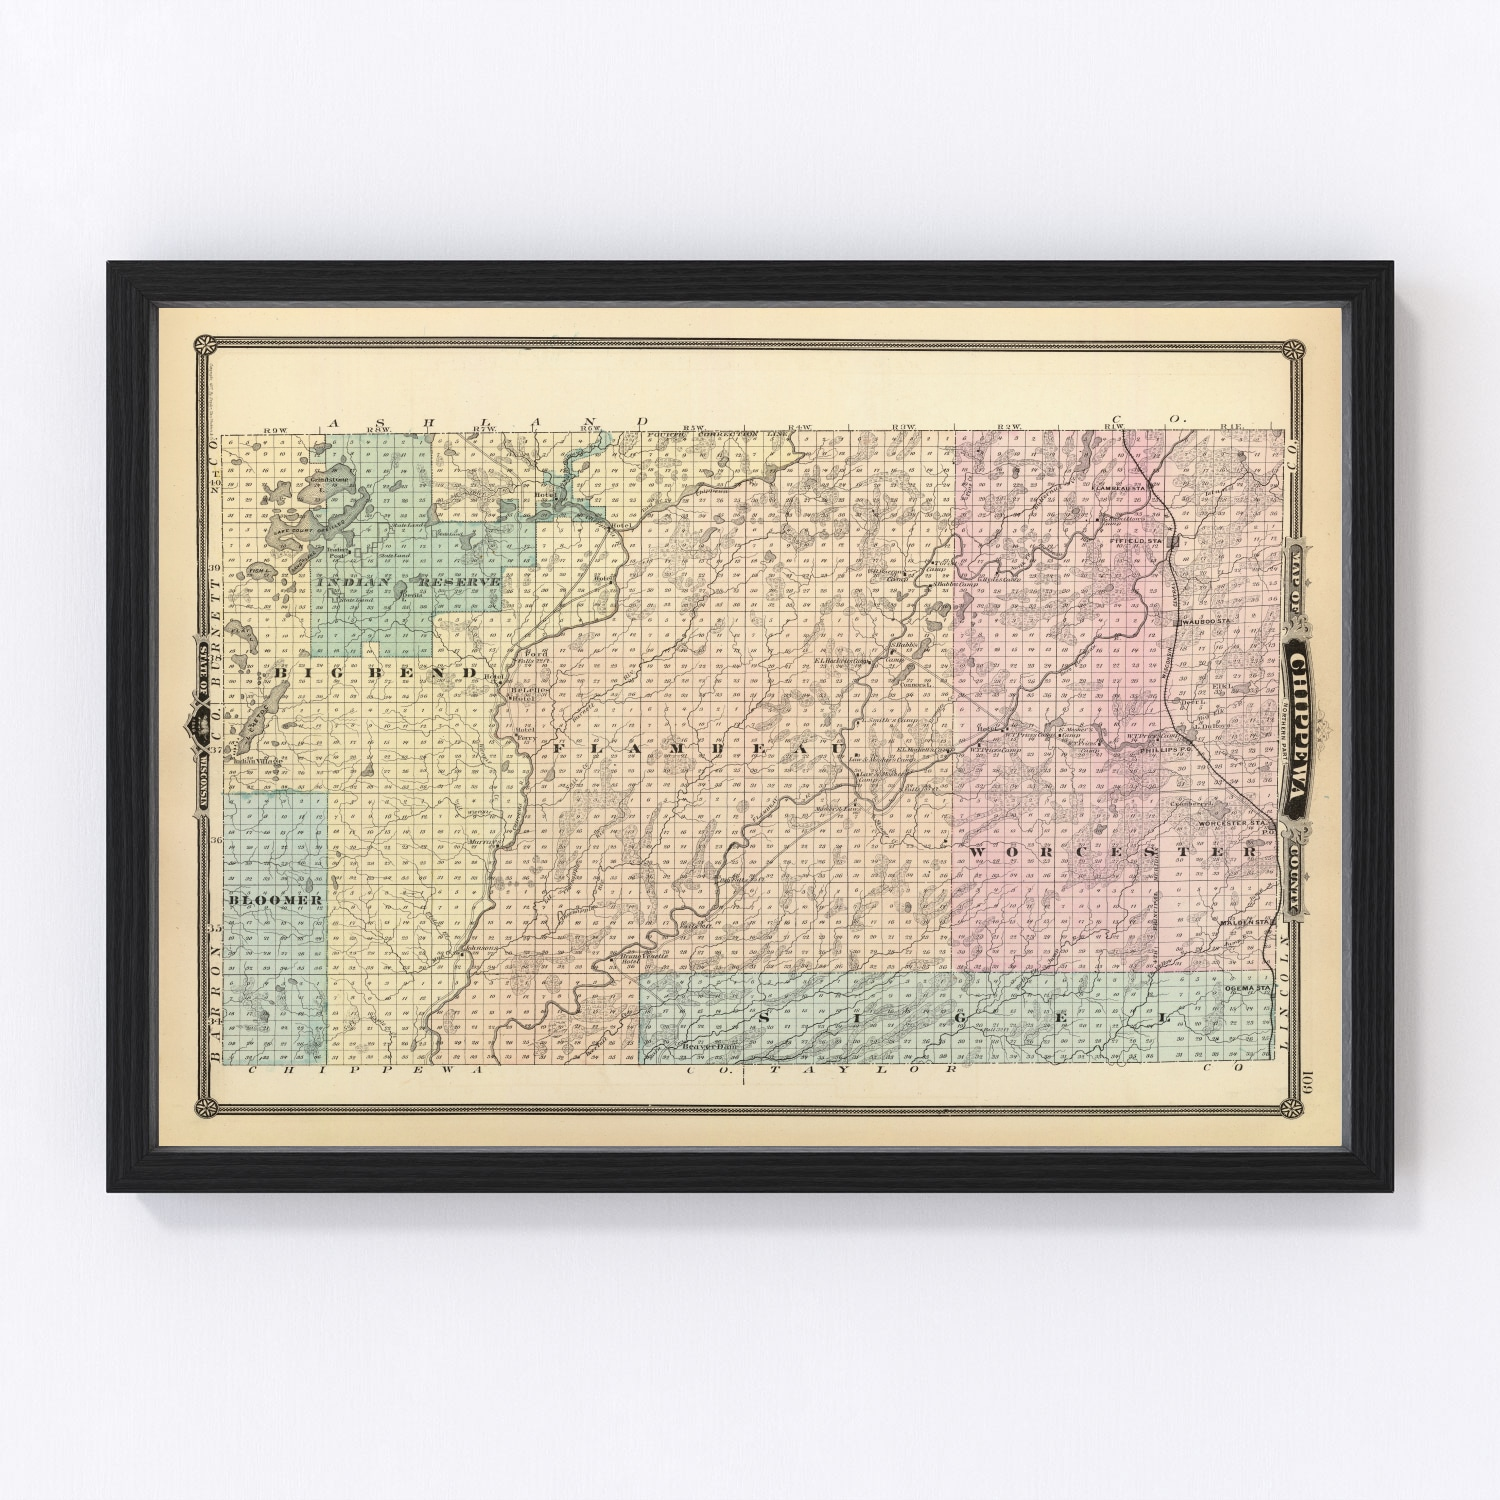 Vintage Map of Chippewa County Wisconsin, 1878